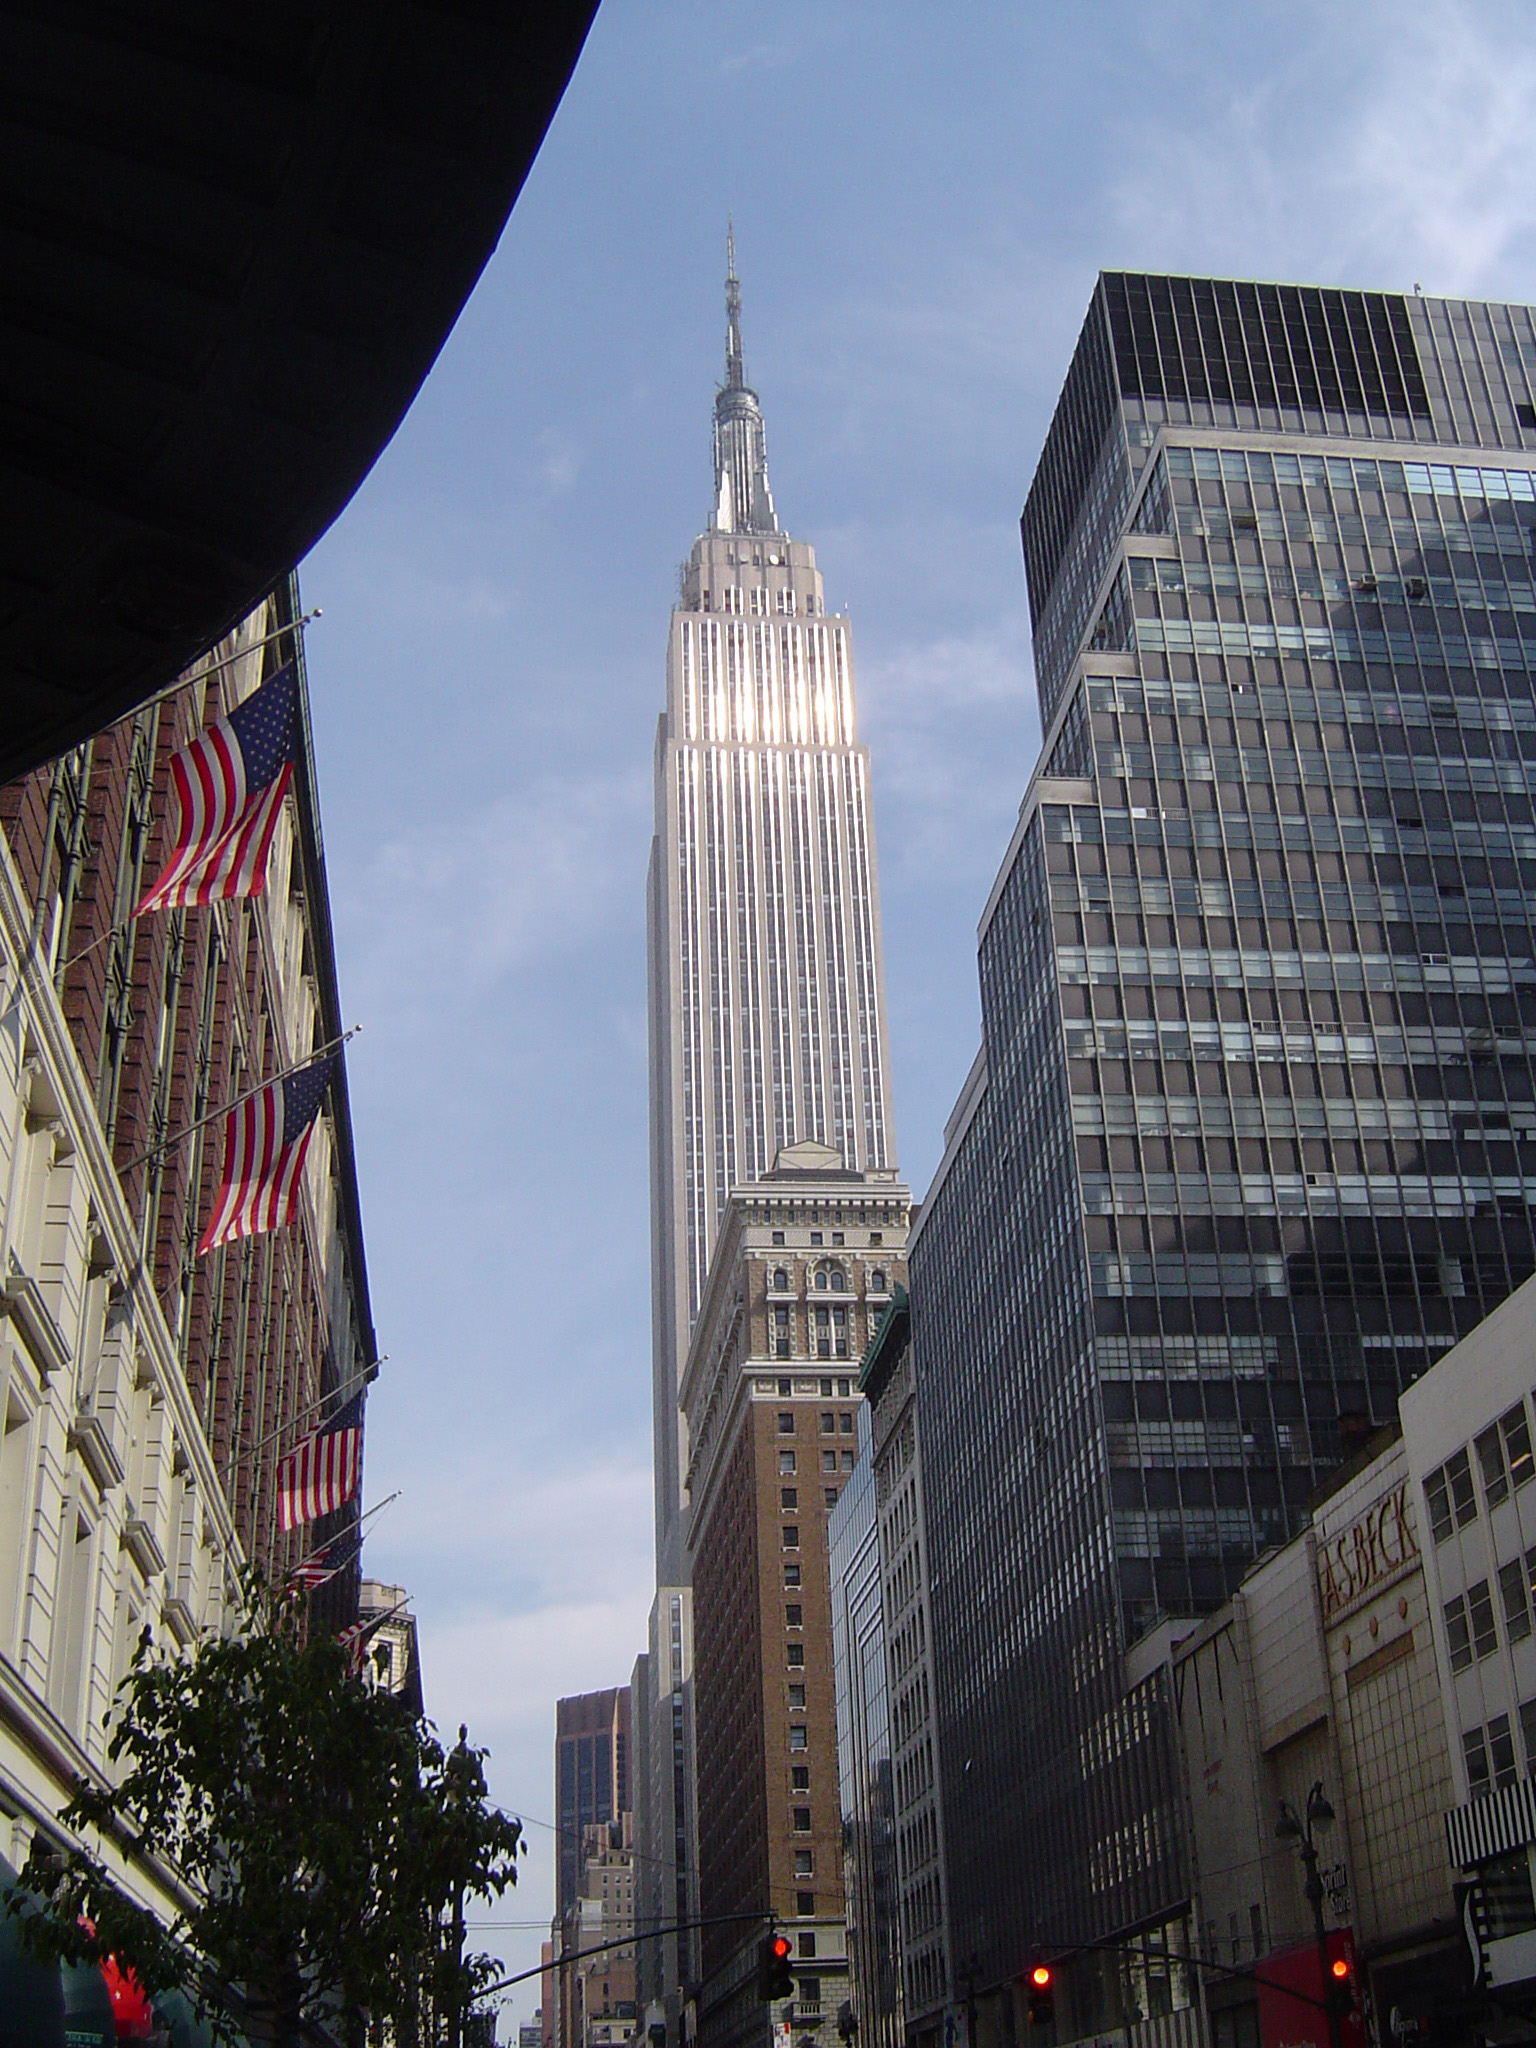 Famous High Architectural Empire State Building in New York, Isolated on Light Blue Sky Background.